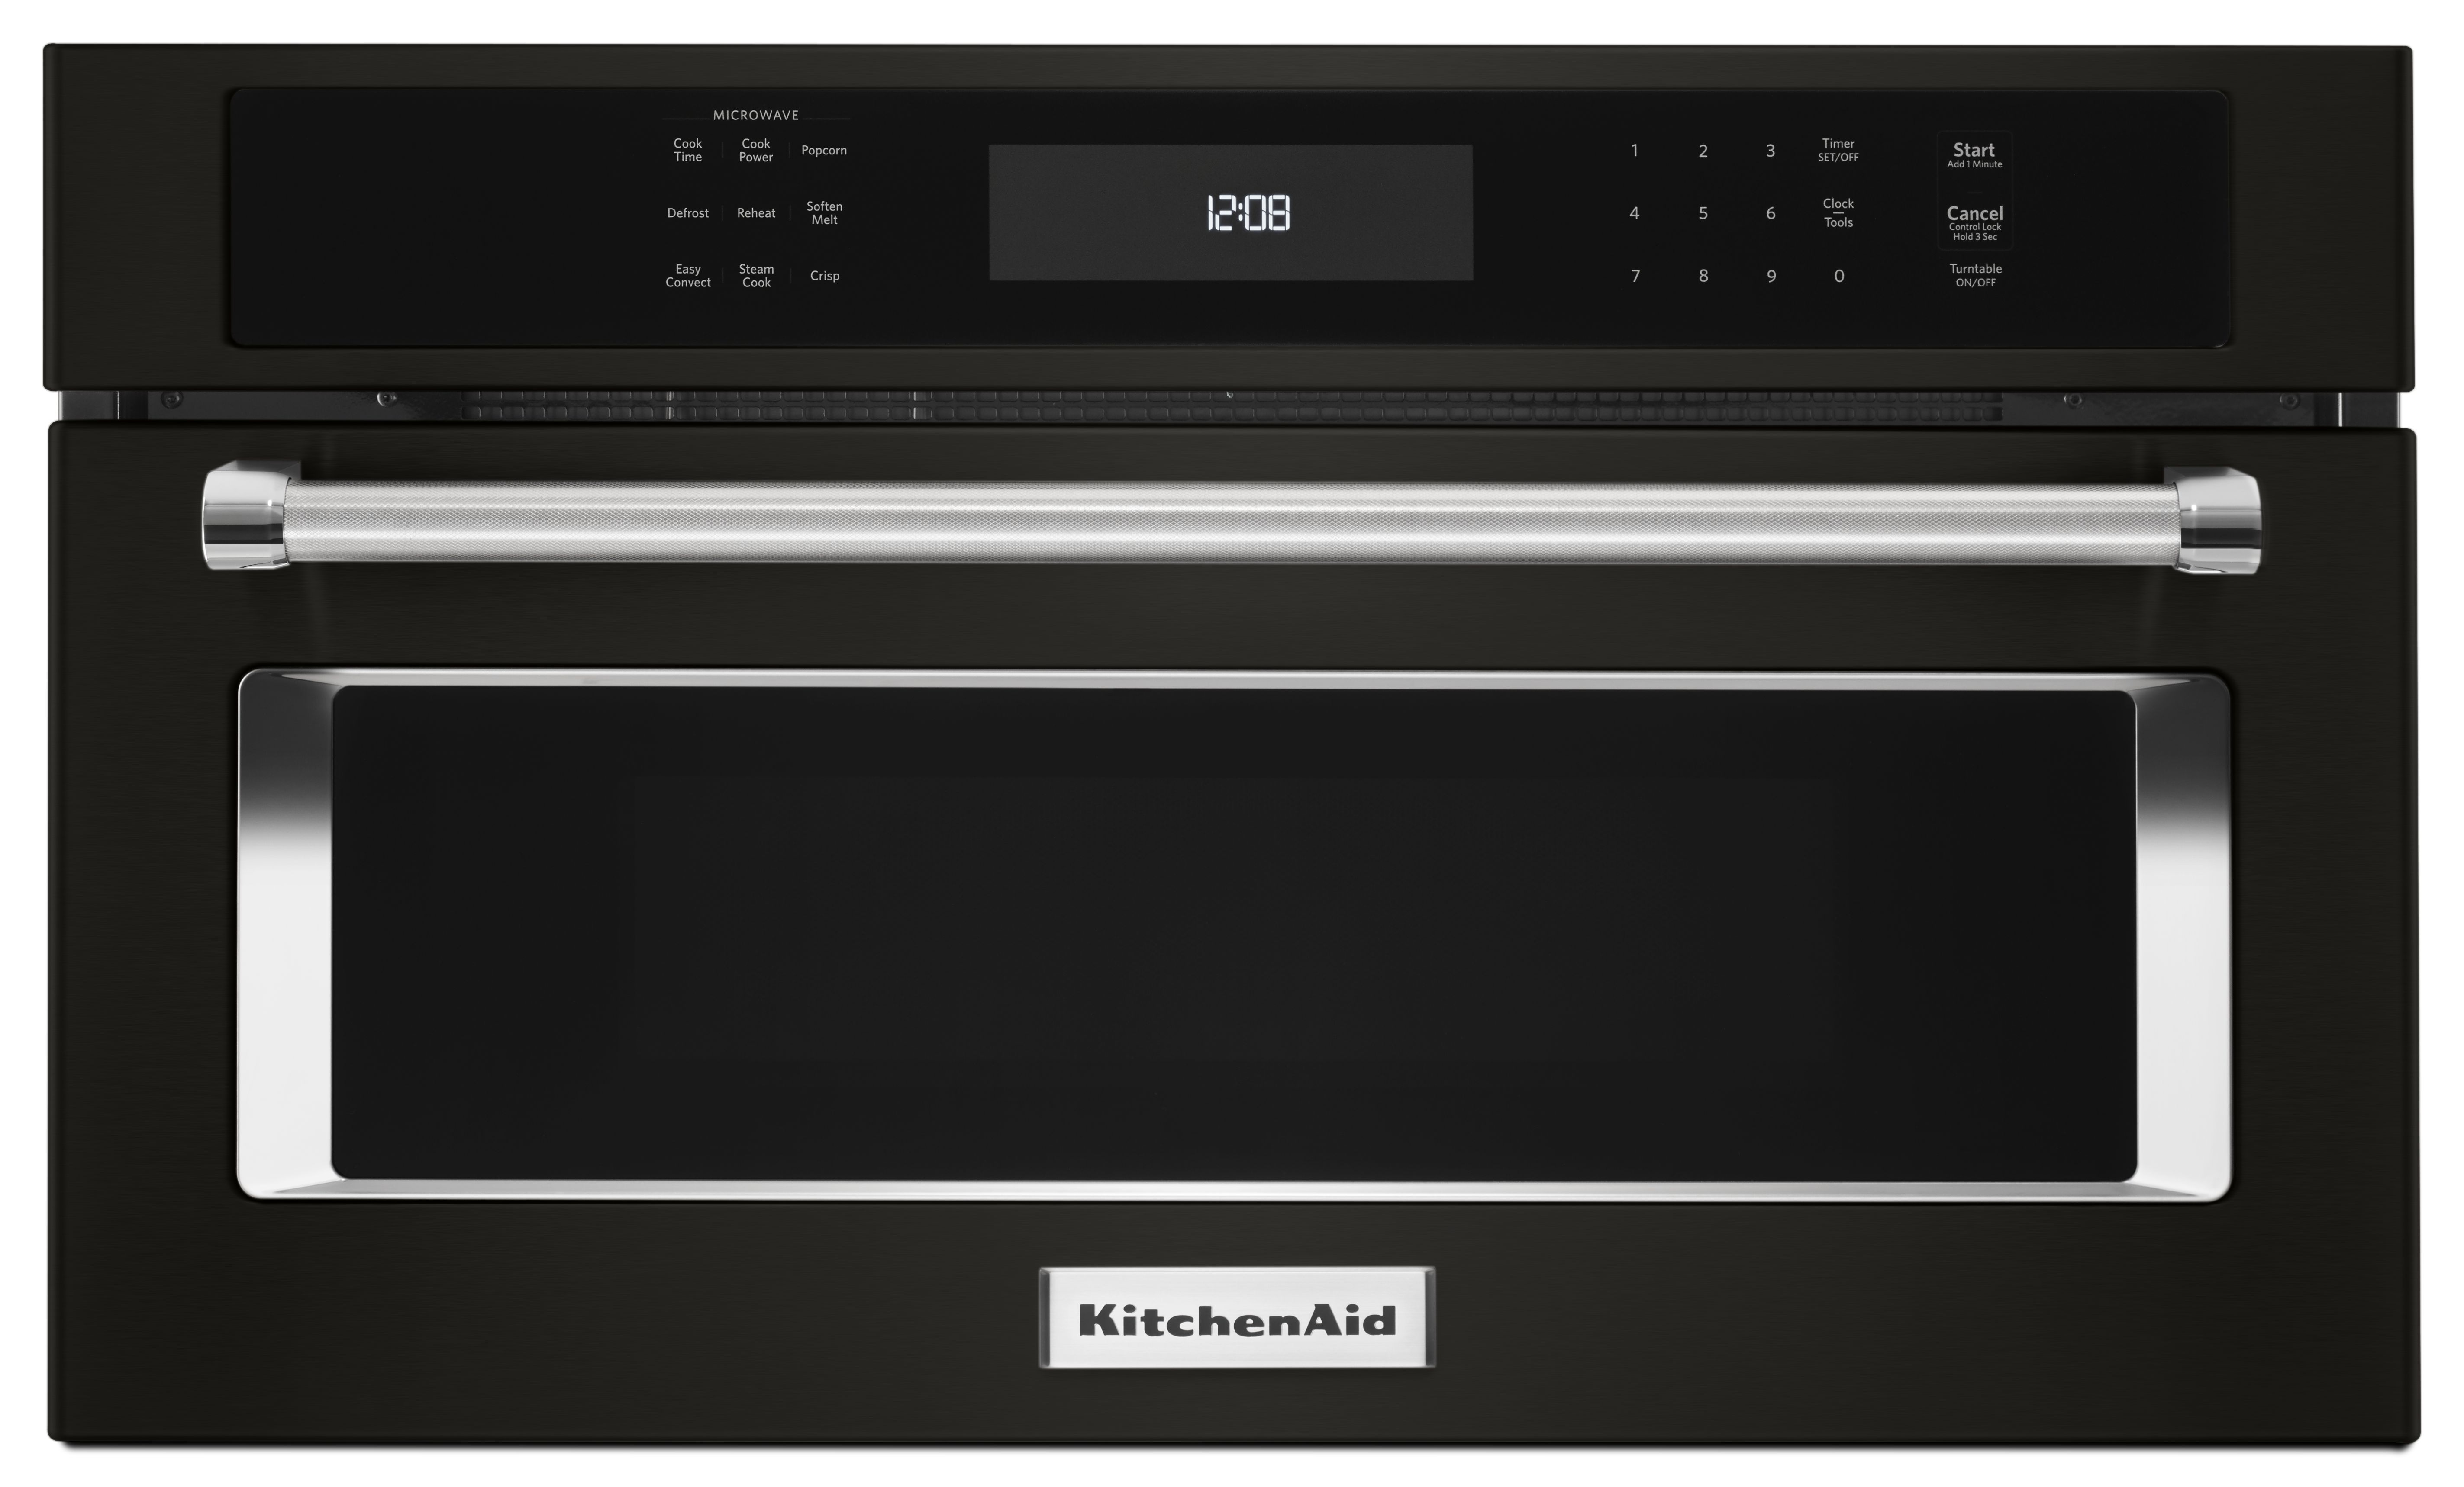 Kitchenaid Black Built In Microwave Oven Black Stainless Steel